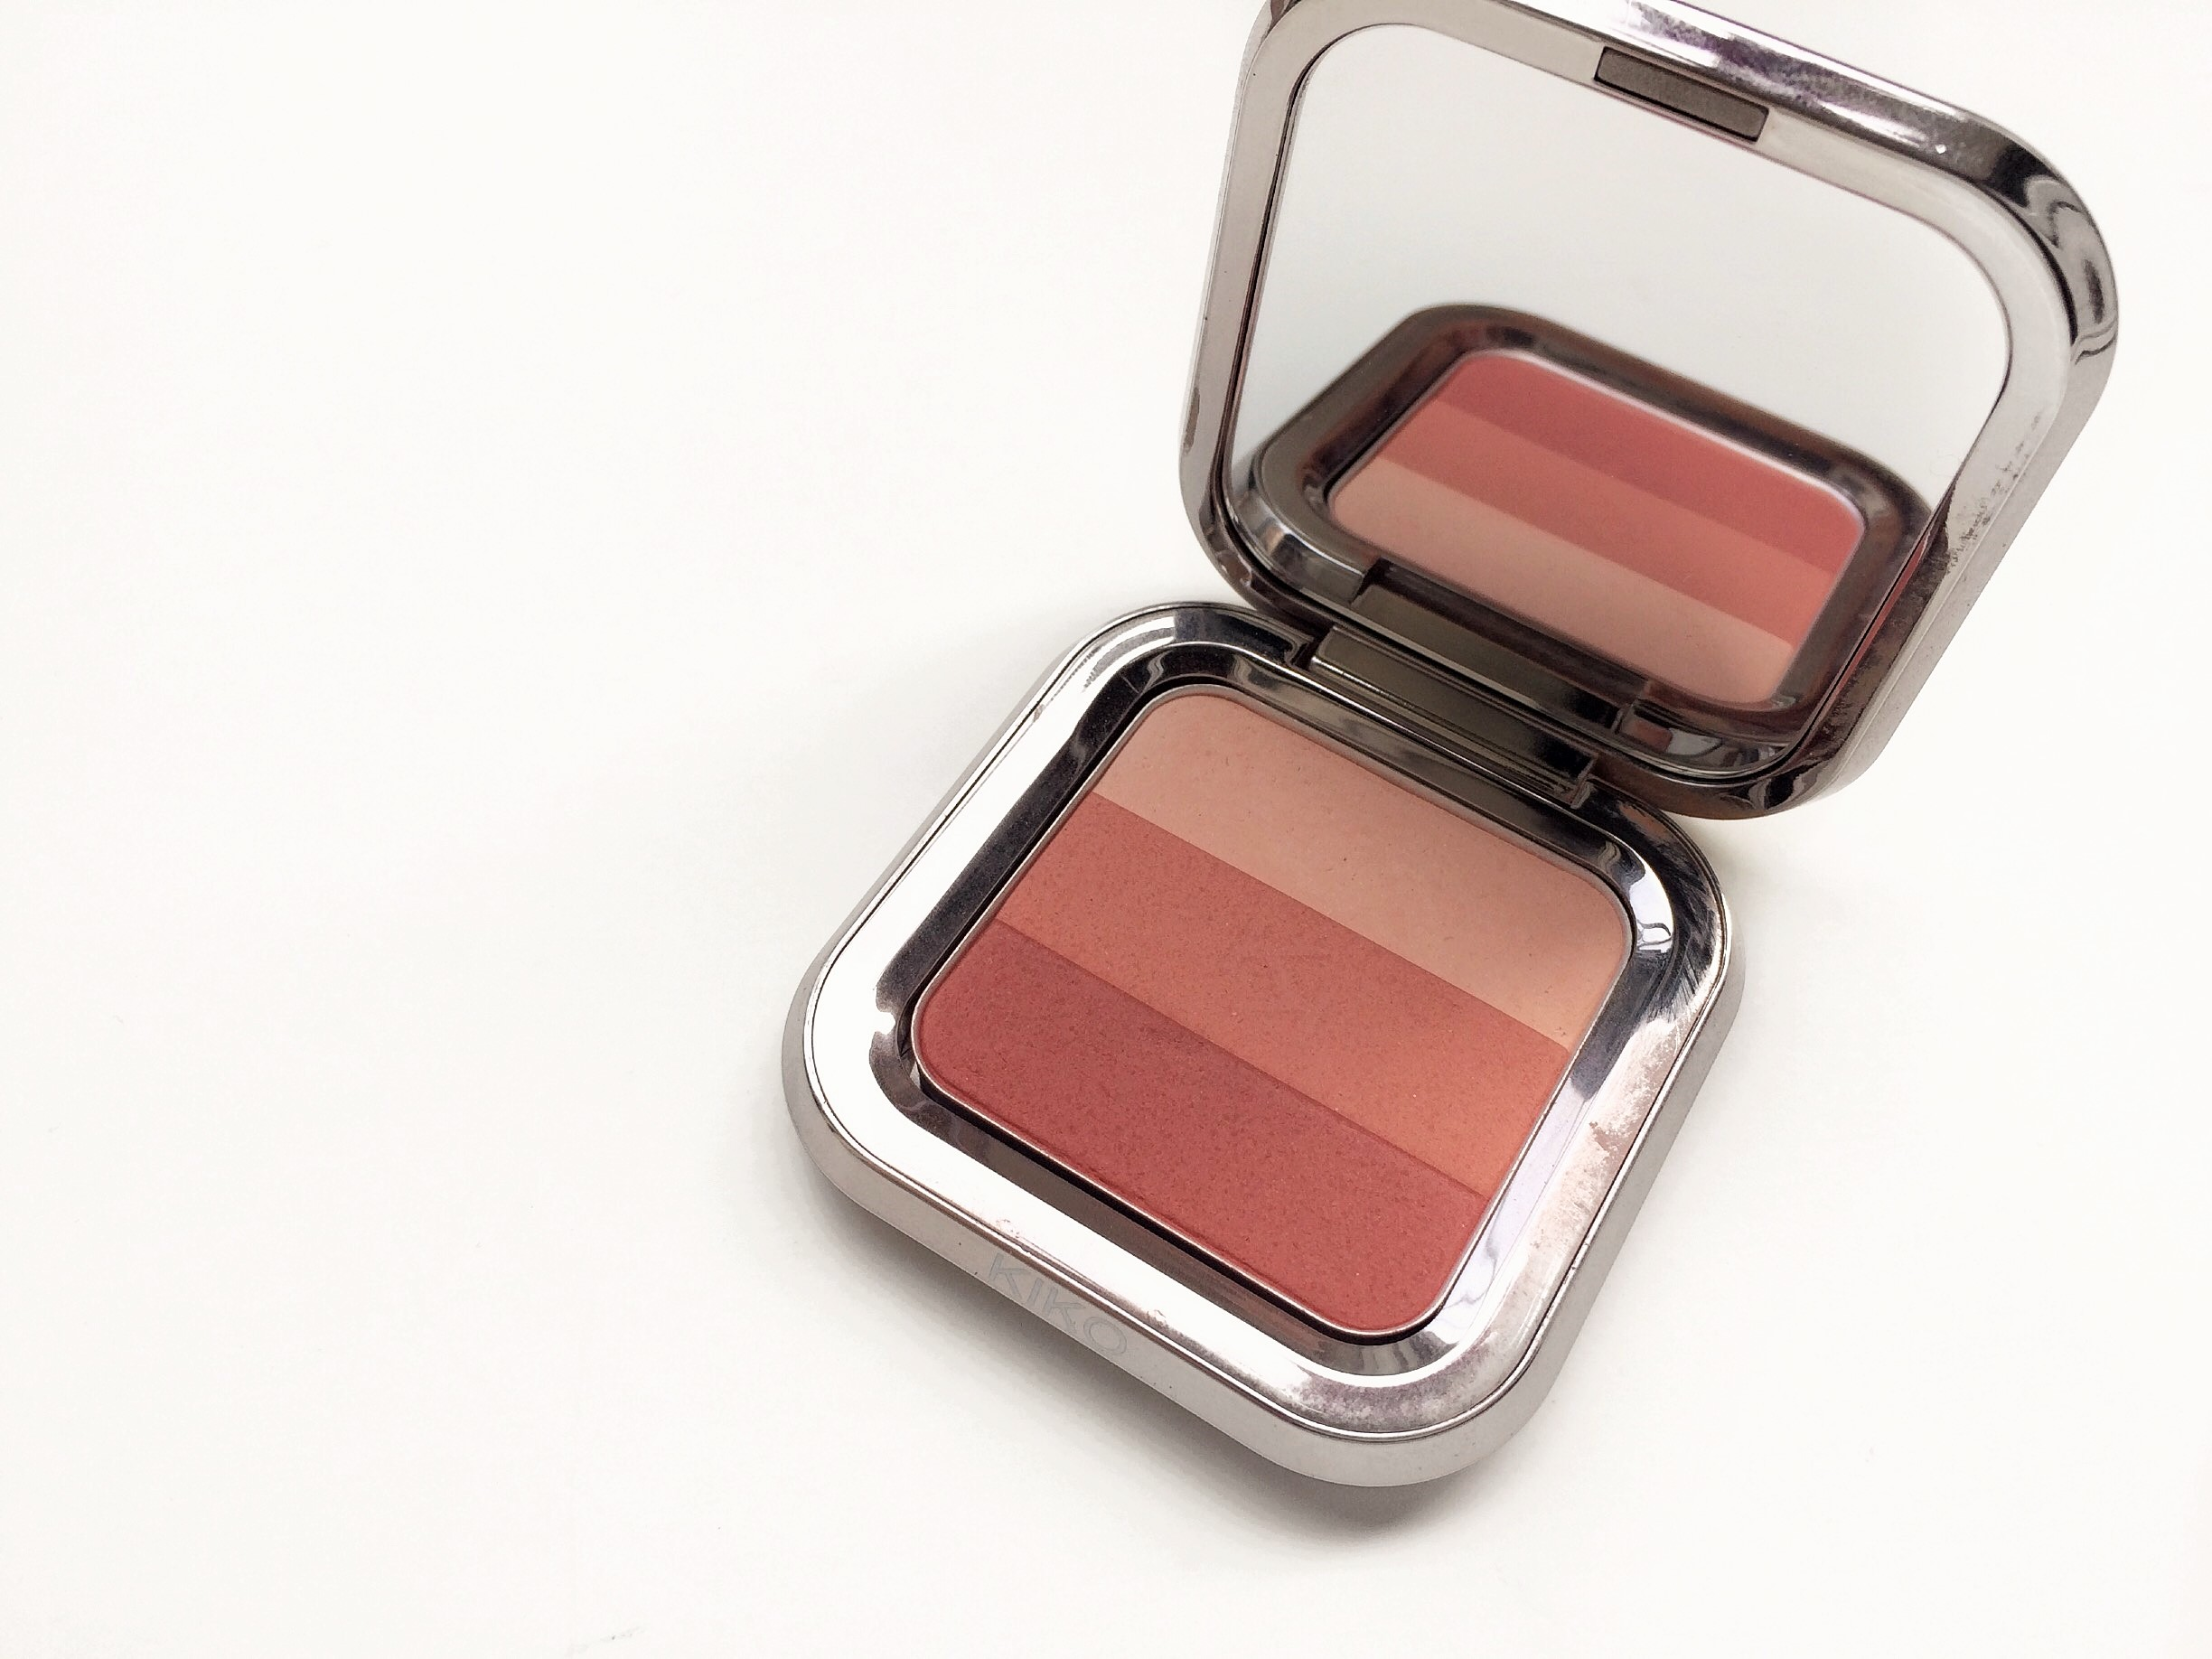 Kiko Shade Fushion Blush Trio Review and Swatches (3).jpg